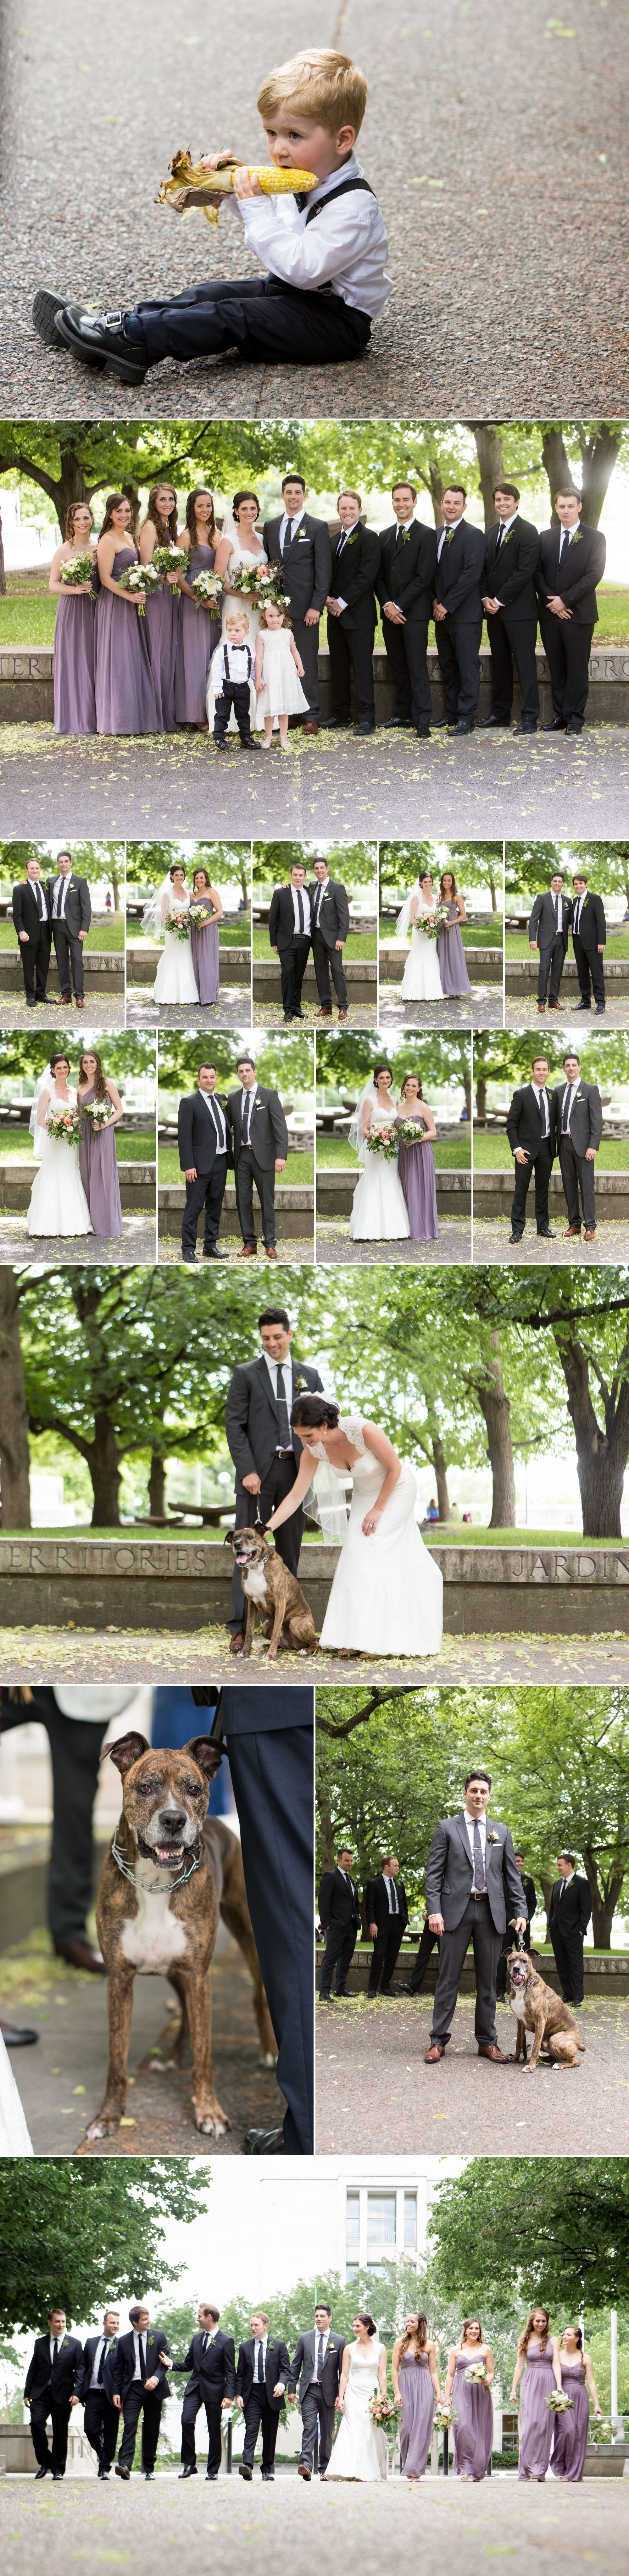 Portraits of a dog, a family, and a wedding party.